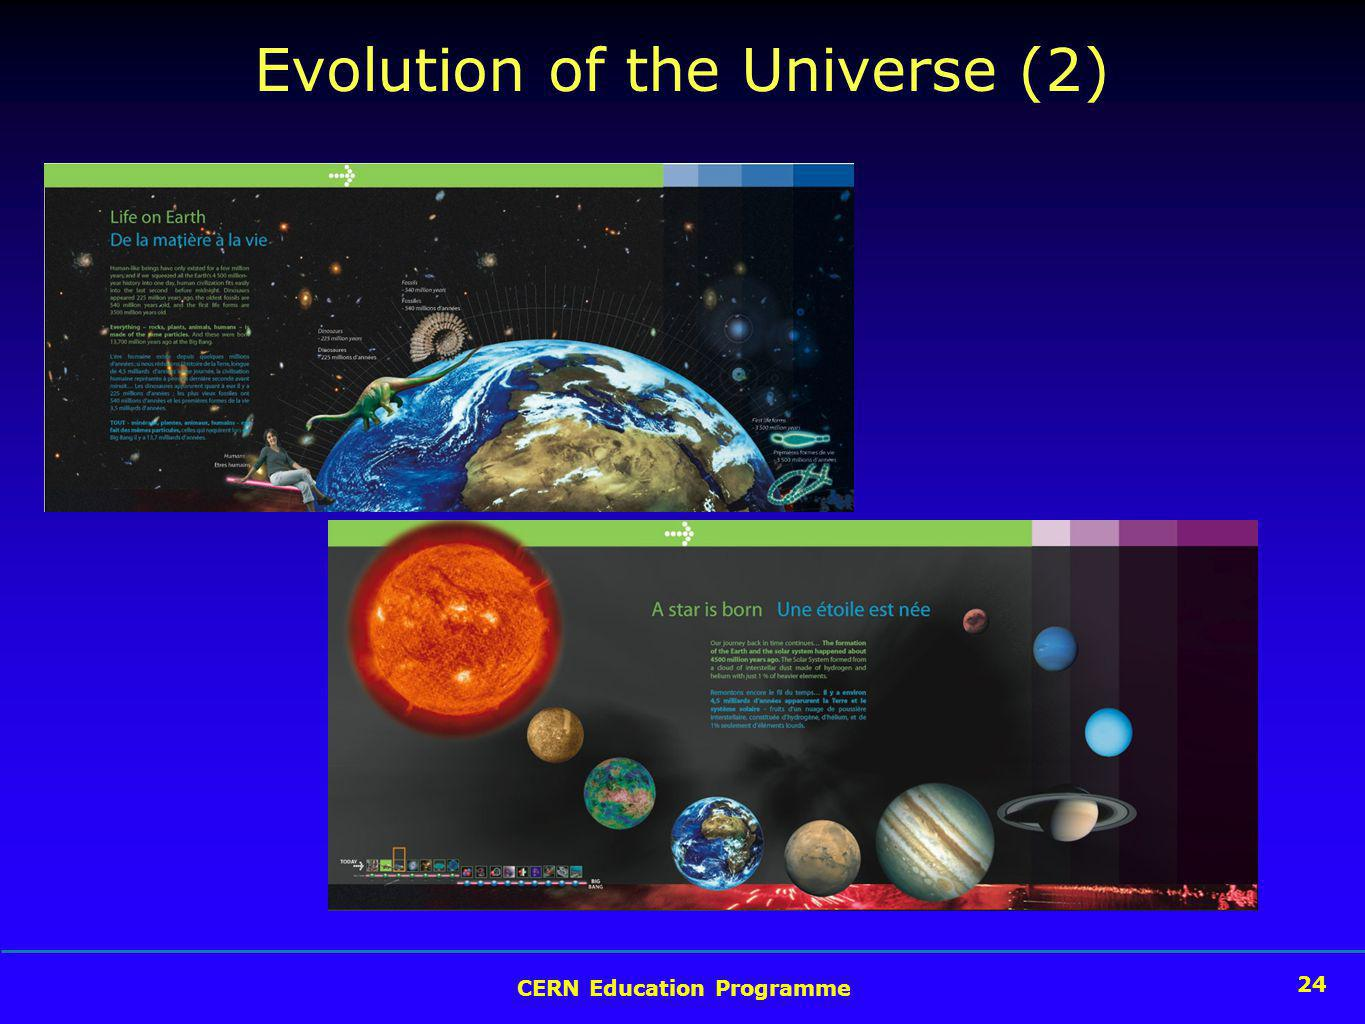 24 CERN Education Programme 24 Evolution of the Universe (2)